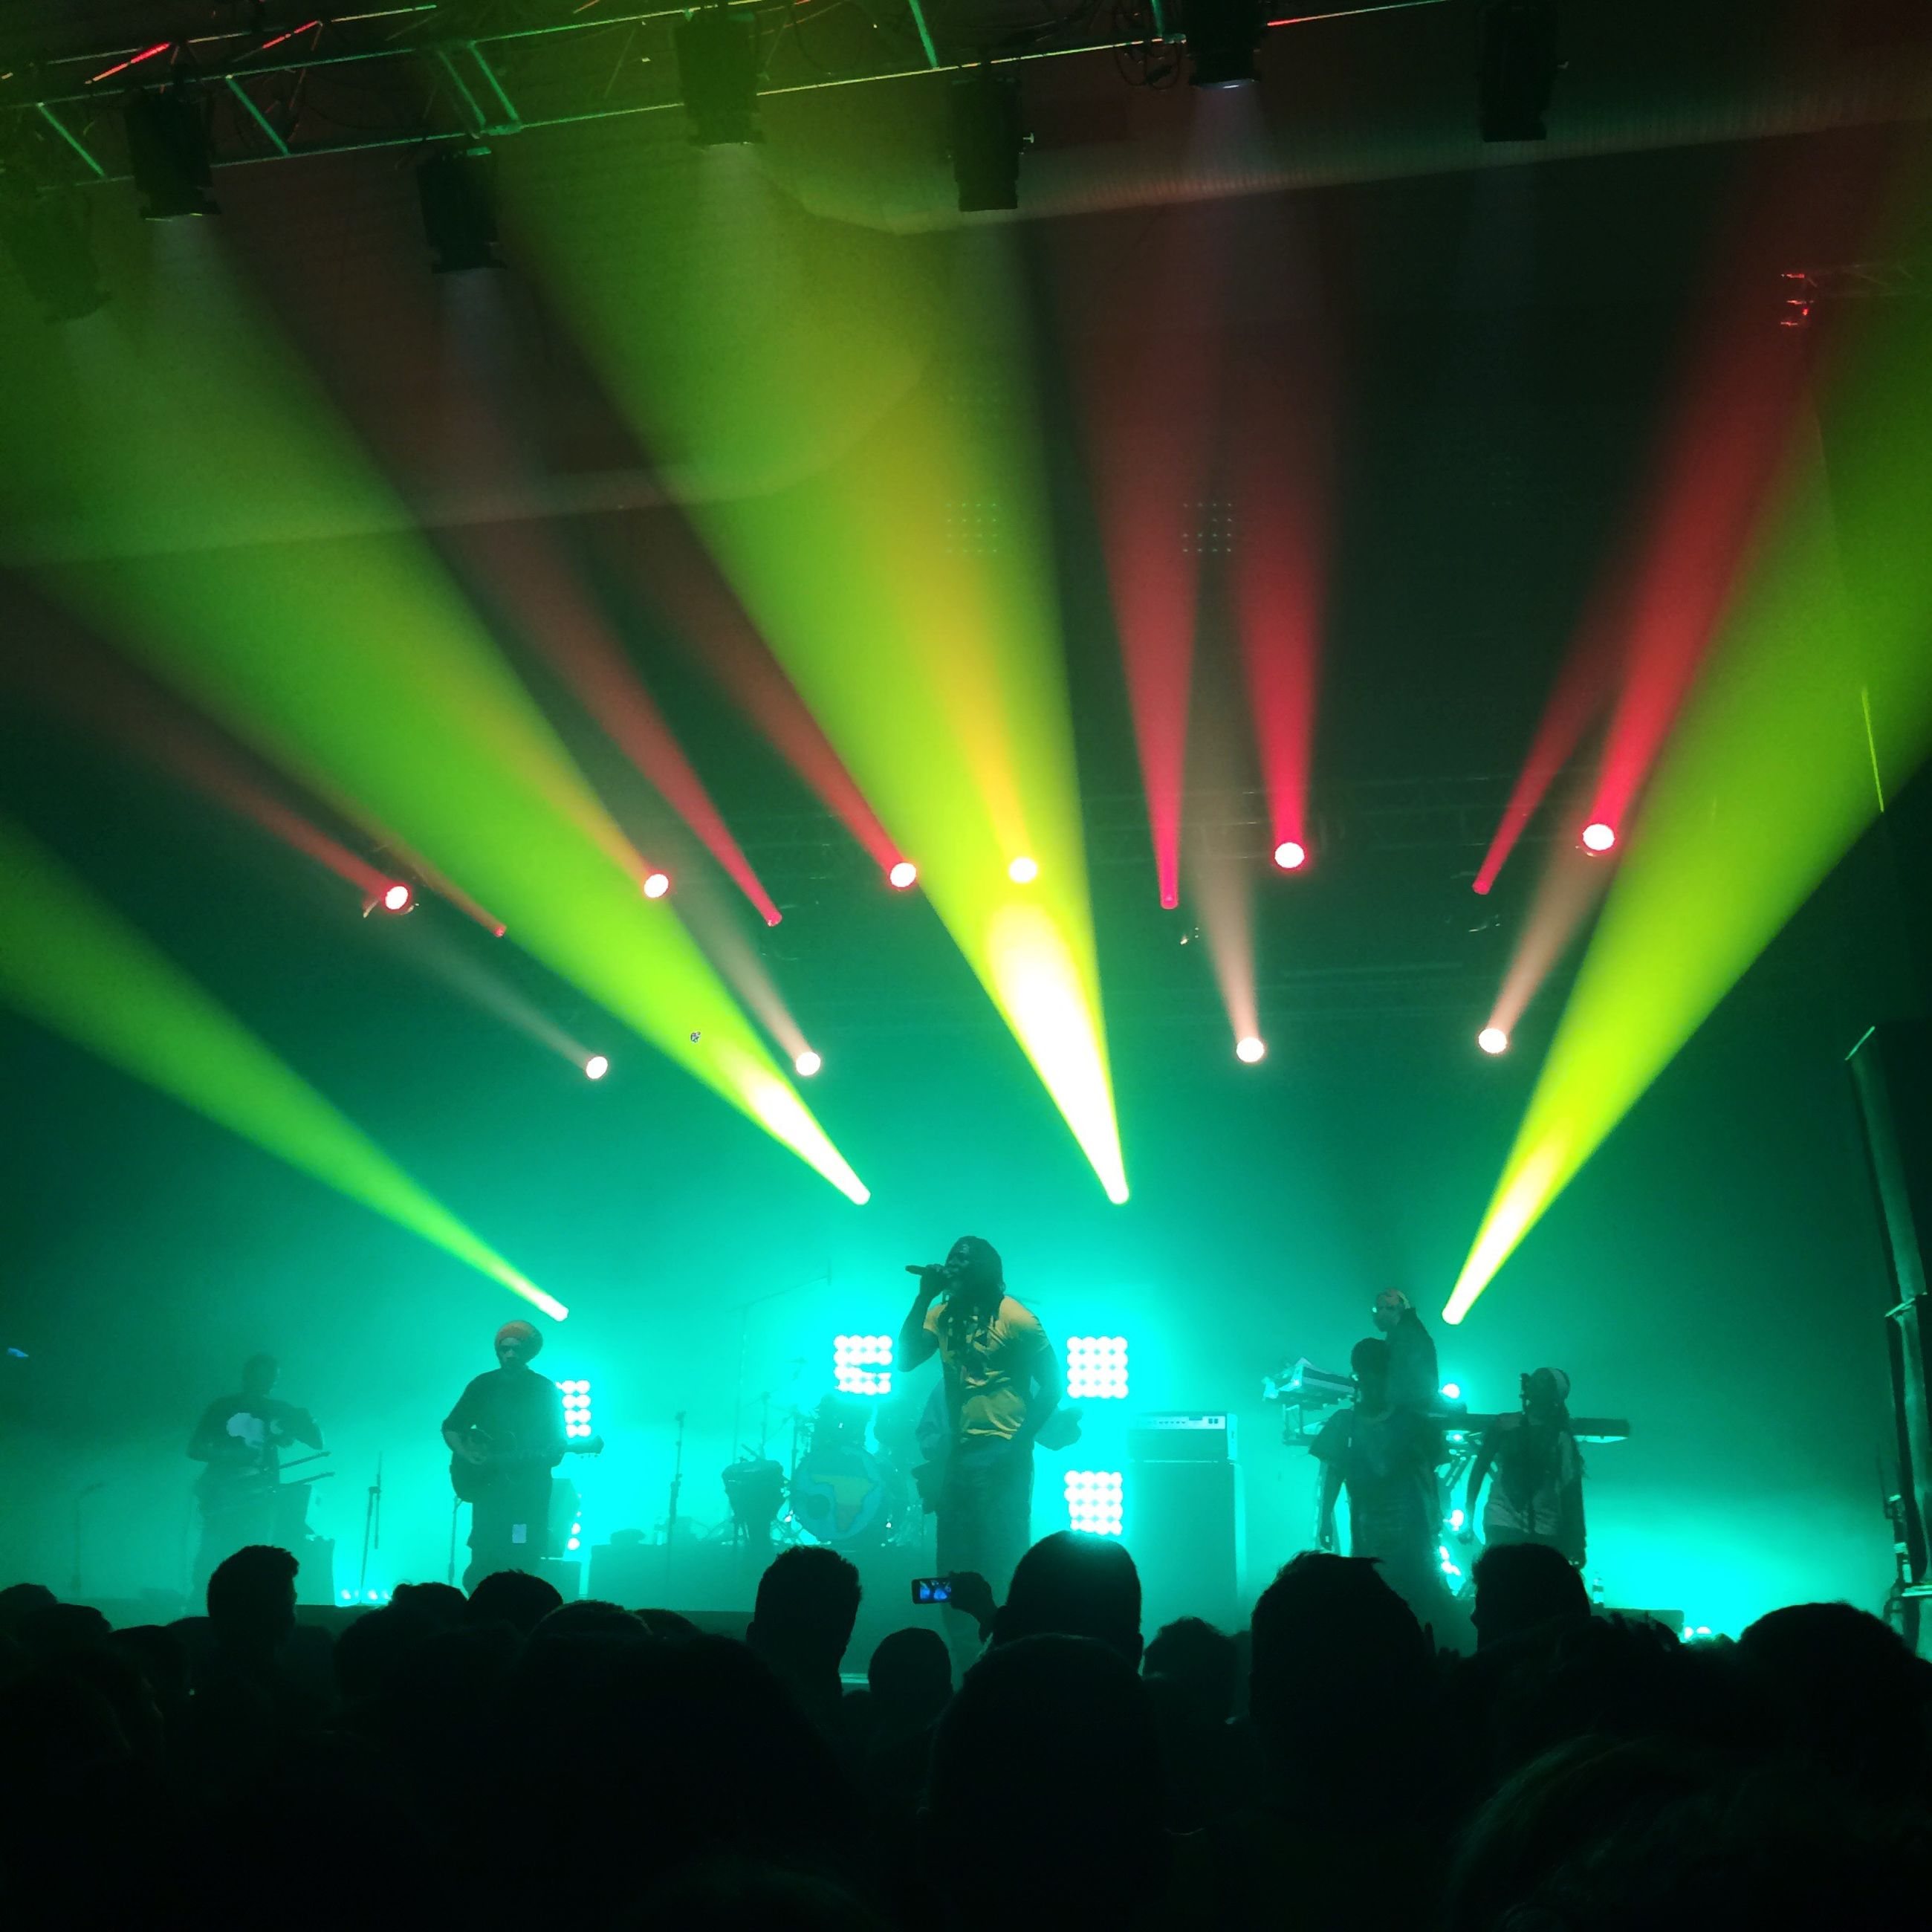 illuminated, indoors, night, nightlife, large group of people, person, stage - performance space, lighting equipment, arts culture and entertainment, performance, music, crowd, men, lifestyles, event, stage light, enjoyment, light - natural phenomenon, leisure activity